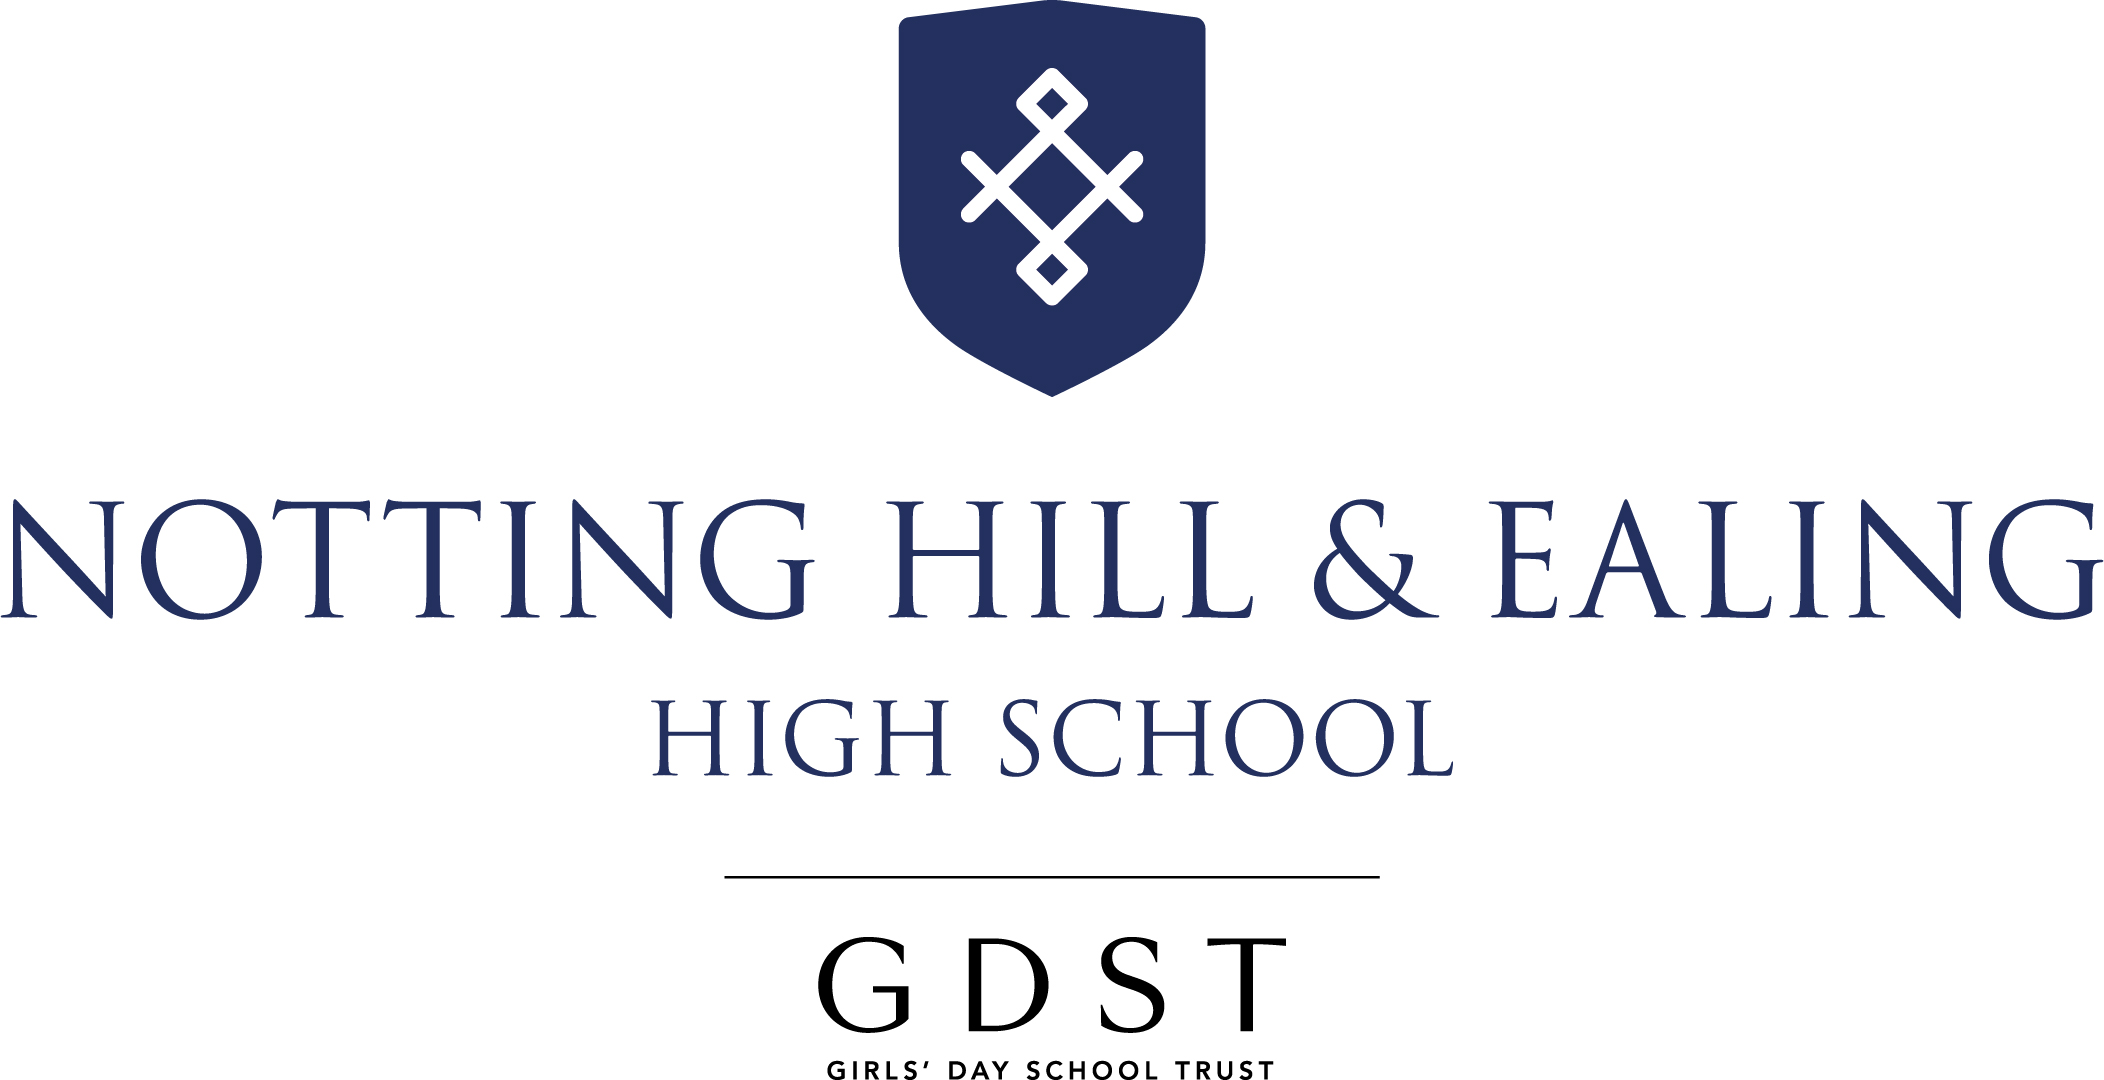 Notting Hill and Ealing High School